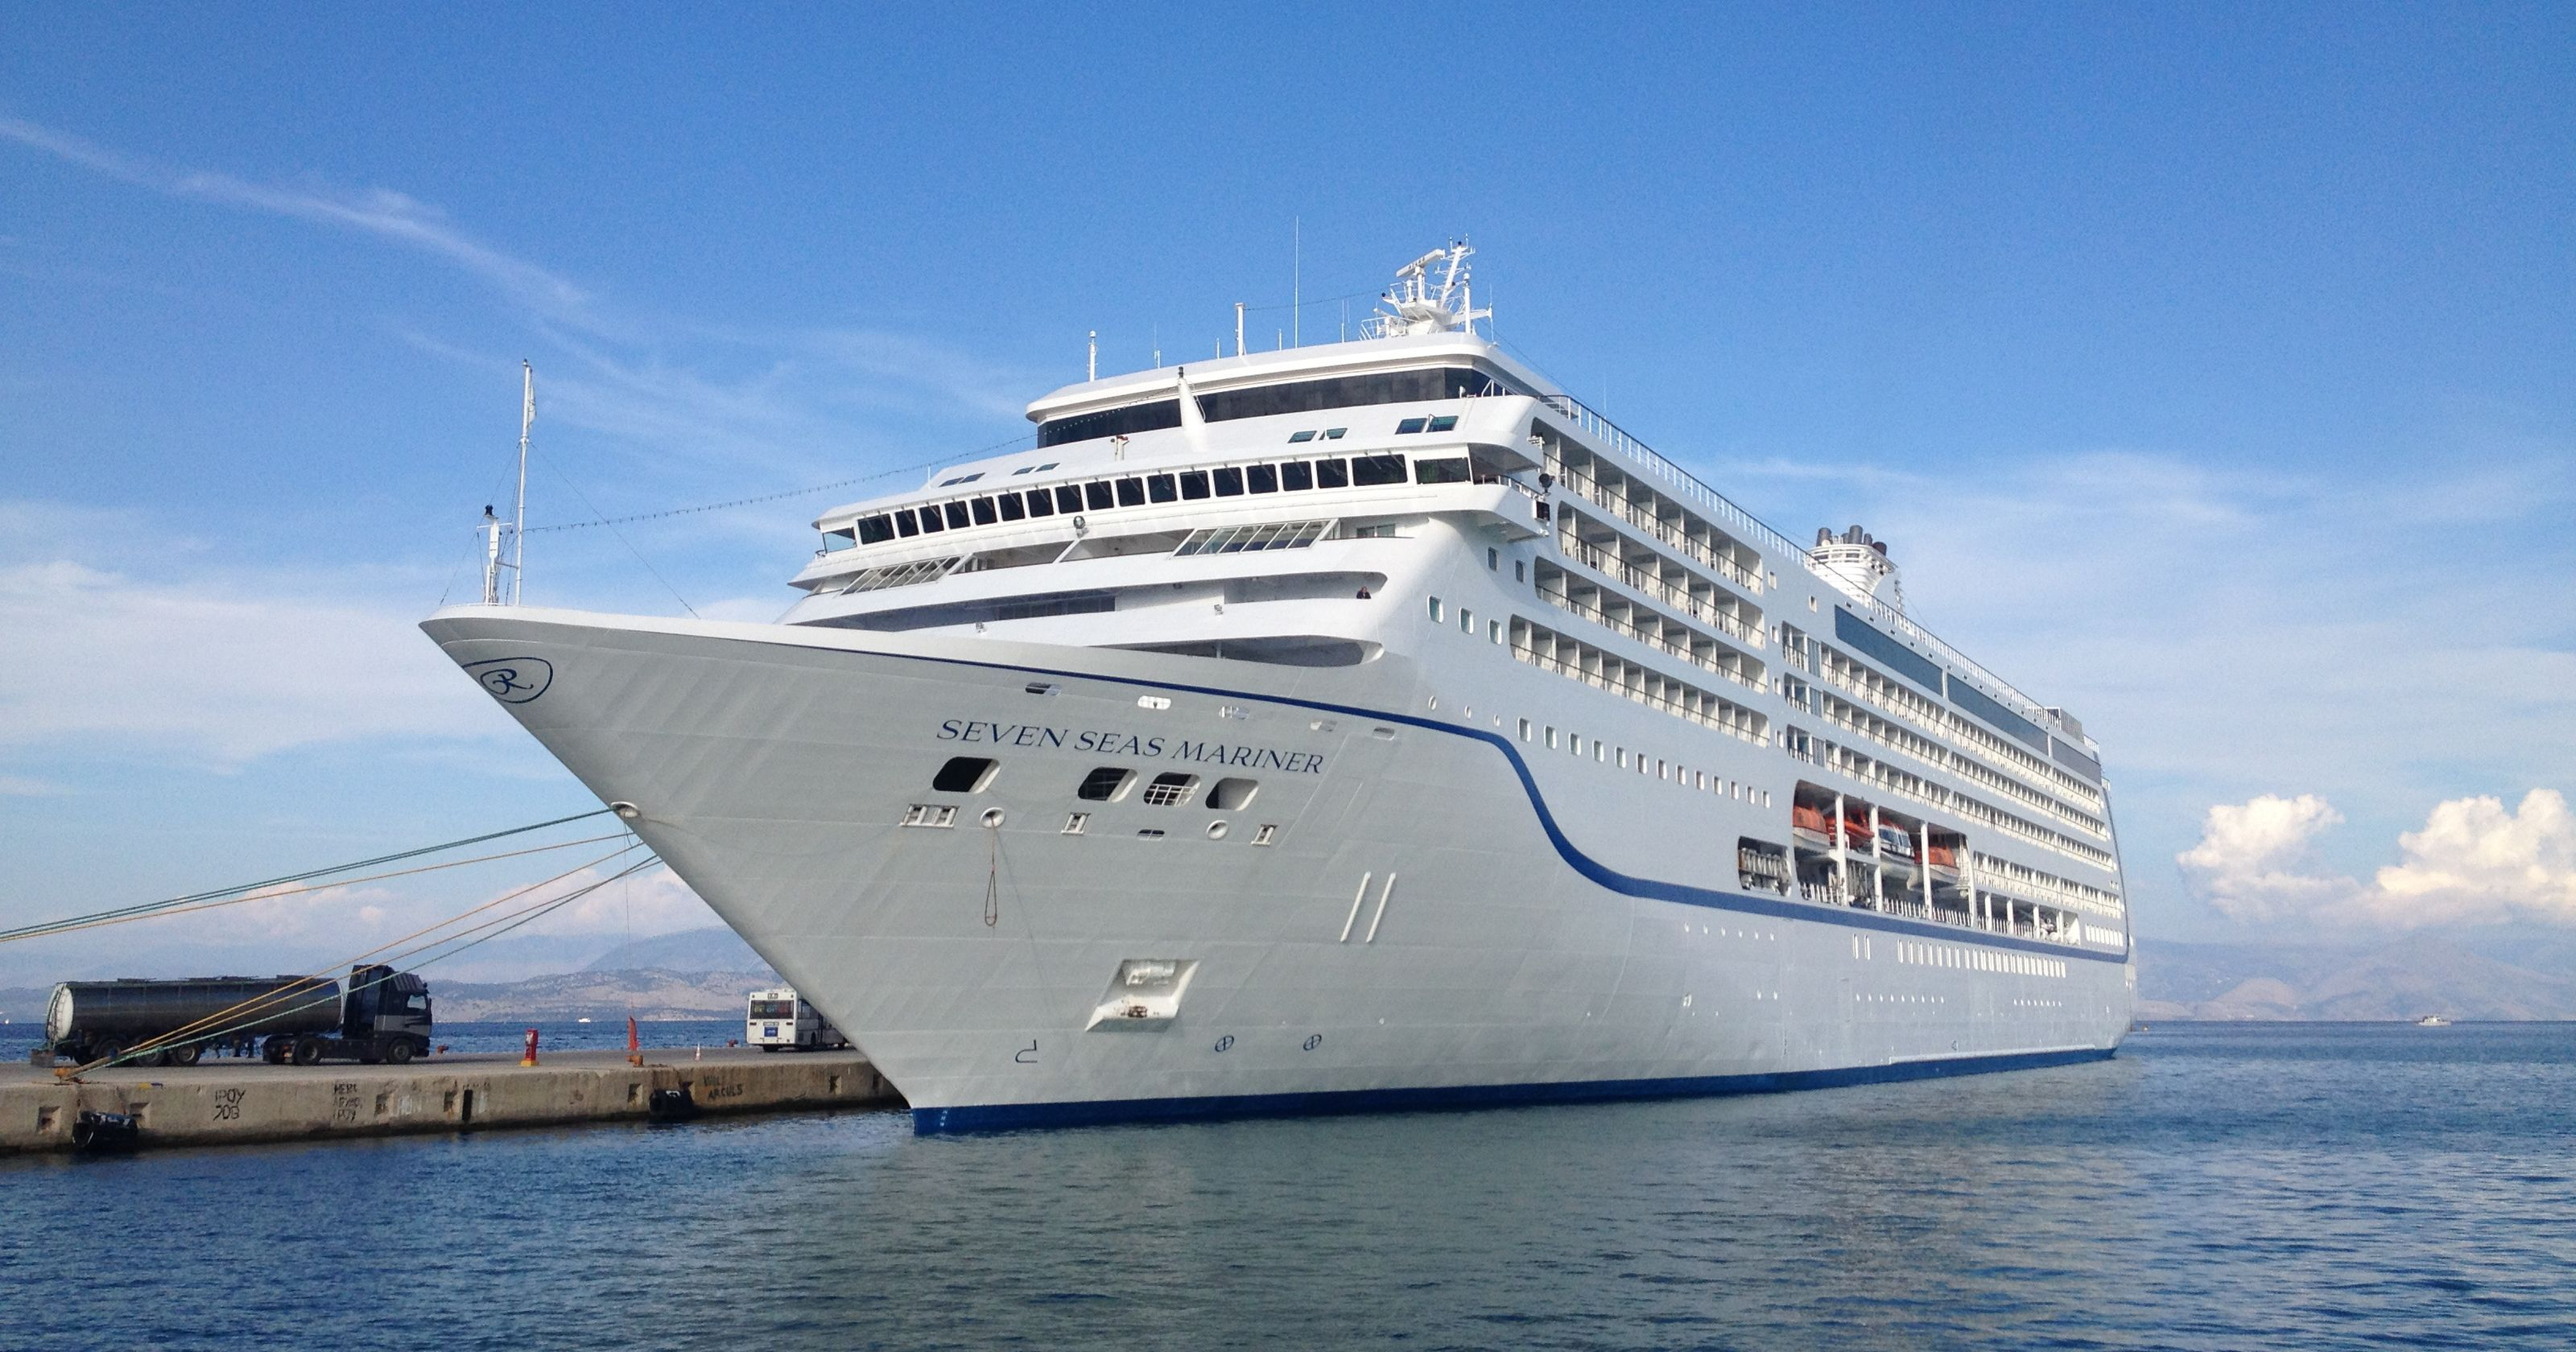 Free Unlimited WiFi On Cruise Ships It Just Might Be A Trend - Cruise ships with wifi